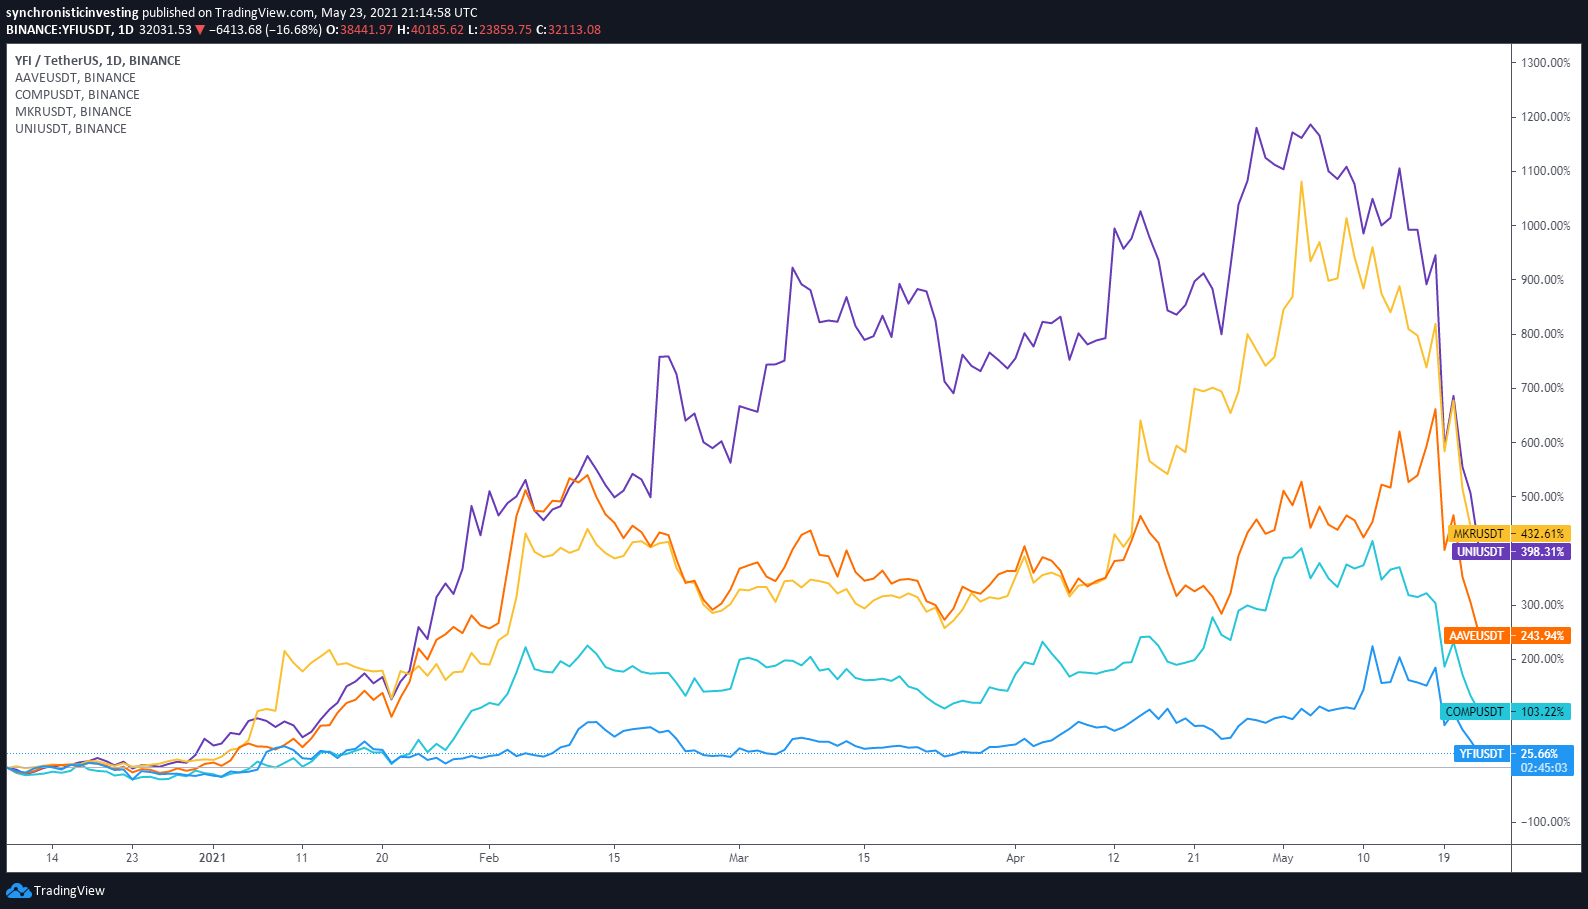 DeFi token prices obliterated as Bitcoin sell-off knocks TVL under $100B